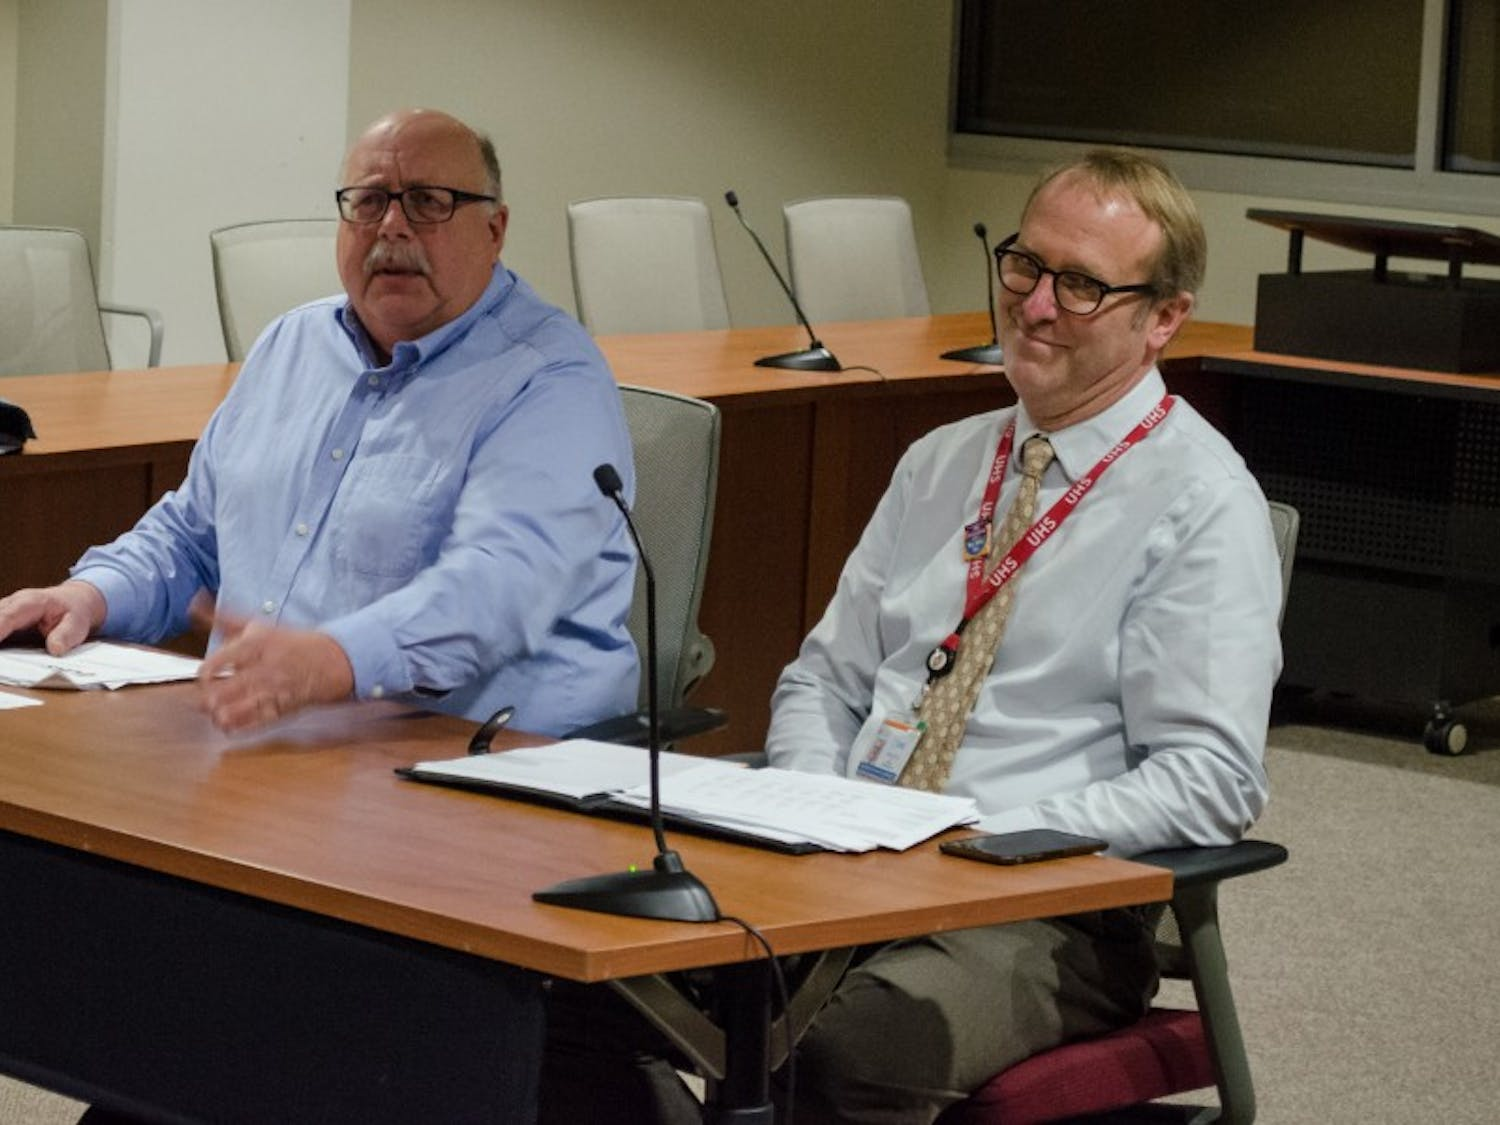 Arnold Jennerman and Bill Kinsey, interim co-directors for University Health Services, presented a budget proposal for 2018-19 to the Student Services Finance Committee.